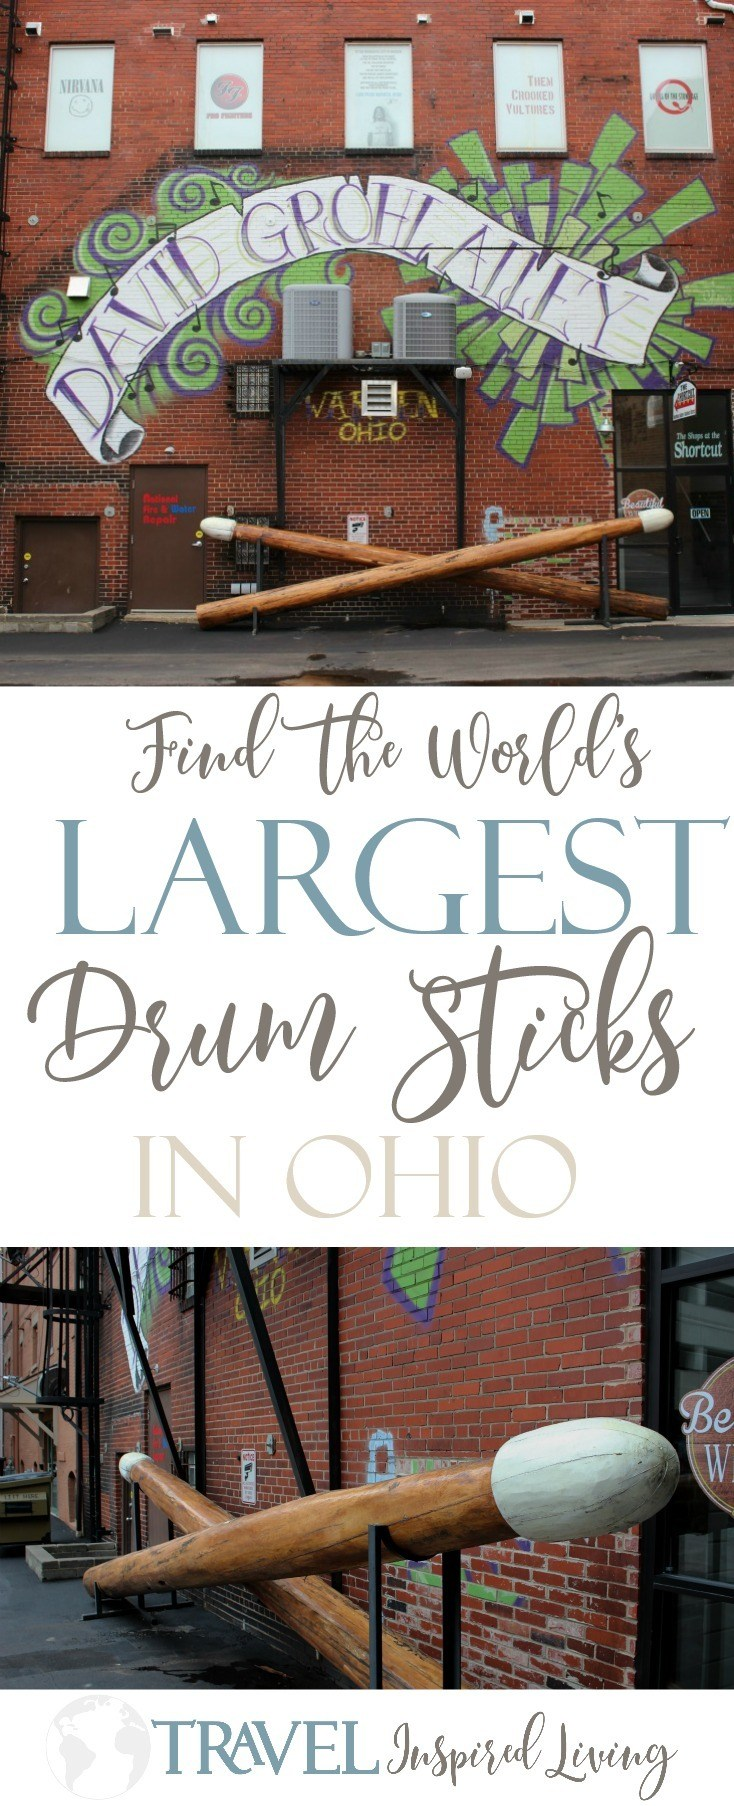 The World's Largest Drum Sticks can be found in an alley in Ohio named after David Grohle, drummer for Nirvana and the Foo Fighters.